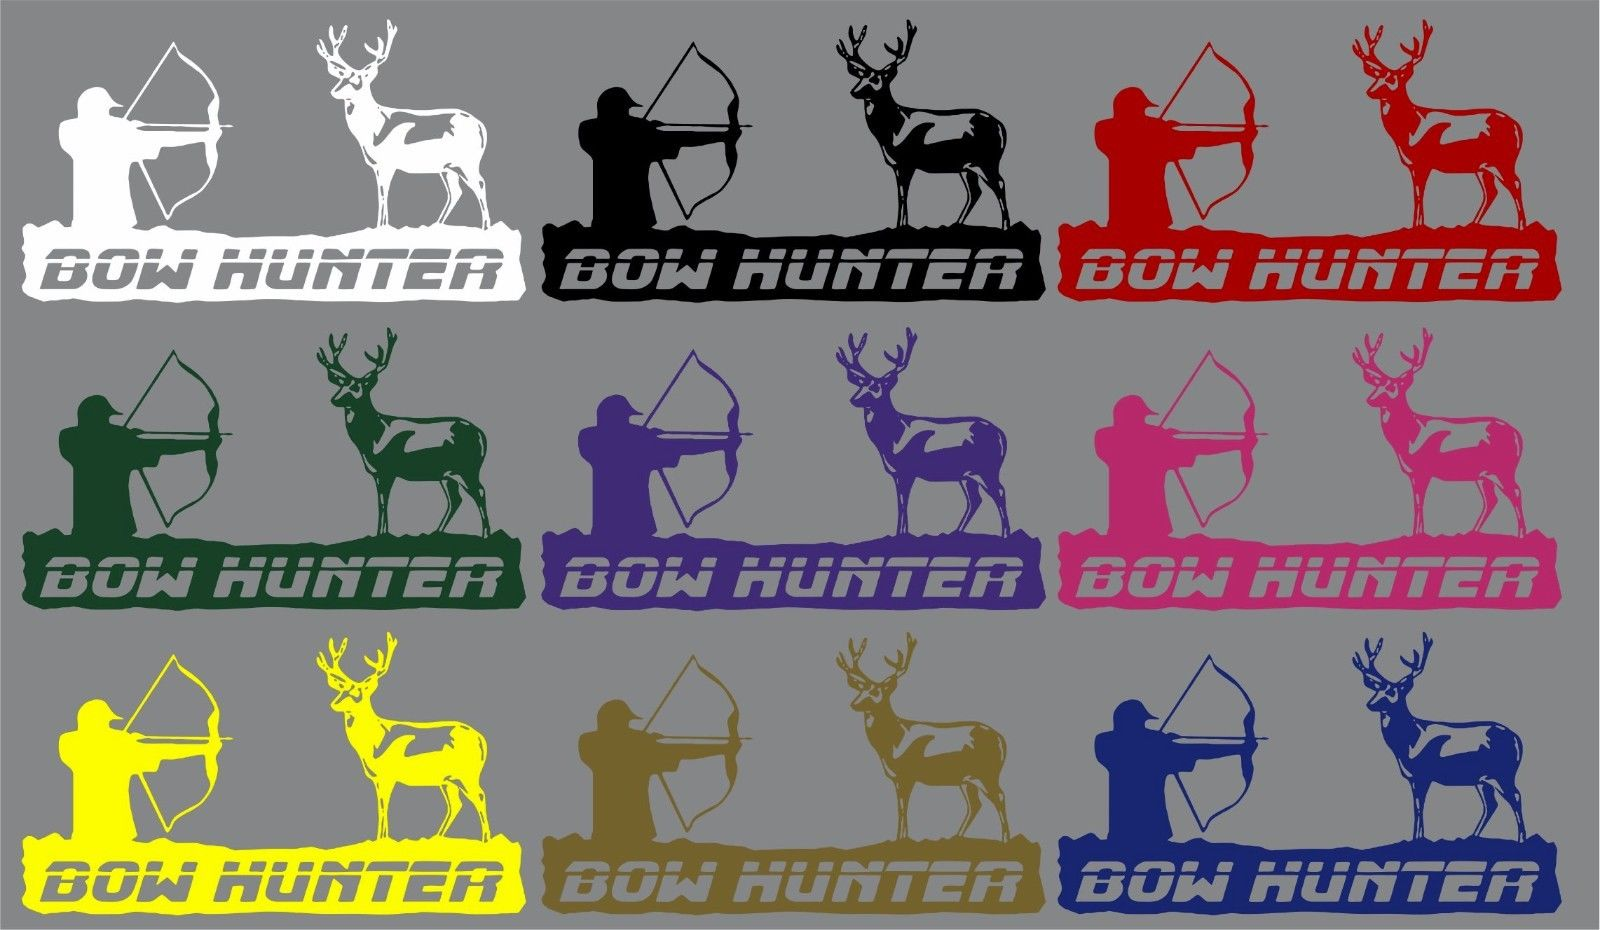 "Bow Hunter Deer Archery Hunting Car Truck Window Laptop Vinyl Decal Sticker - 14"" Long Edge"